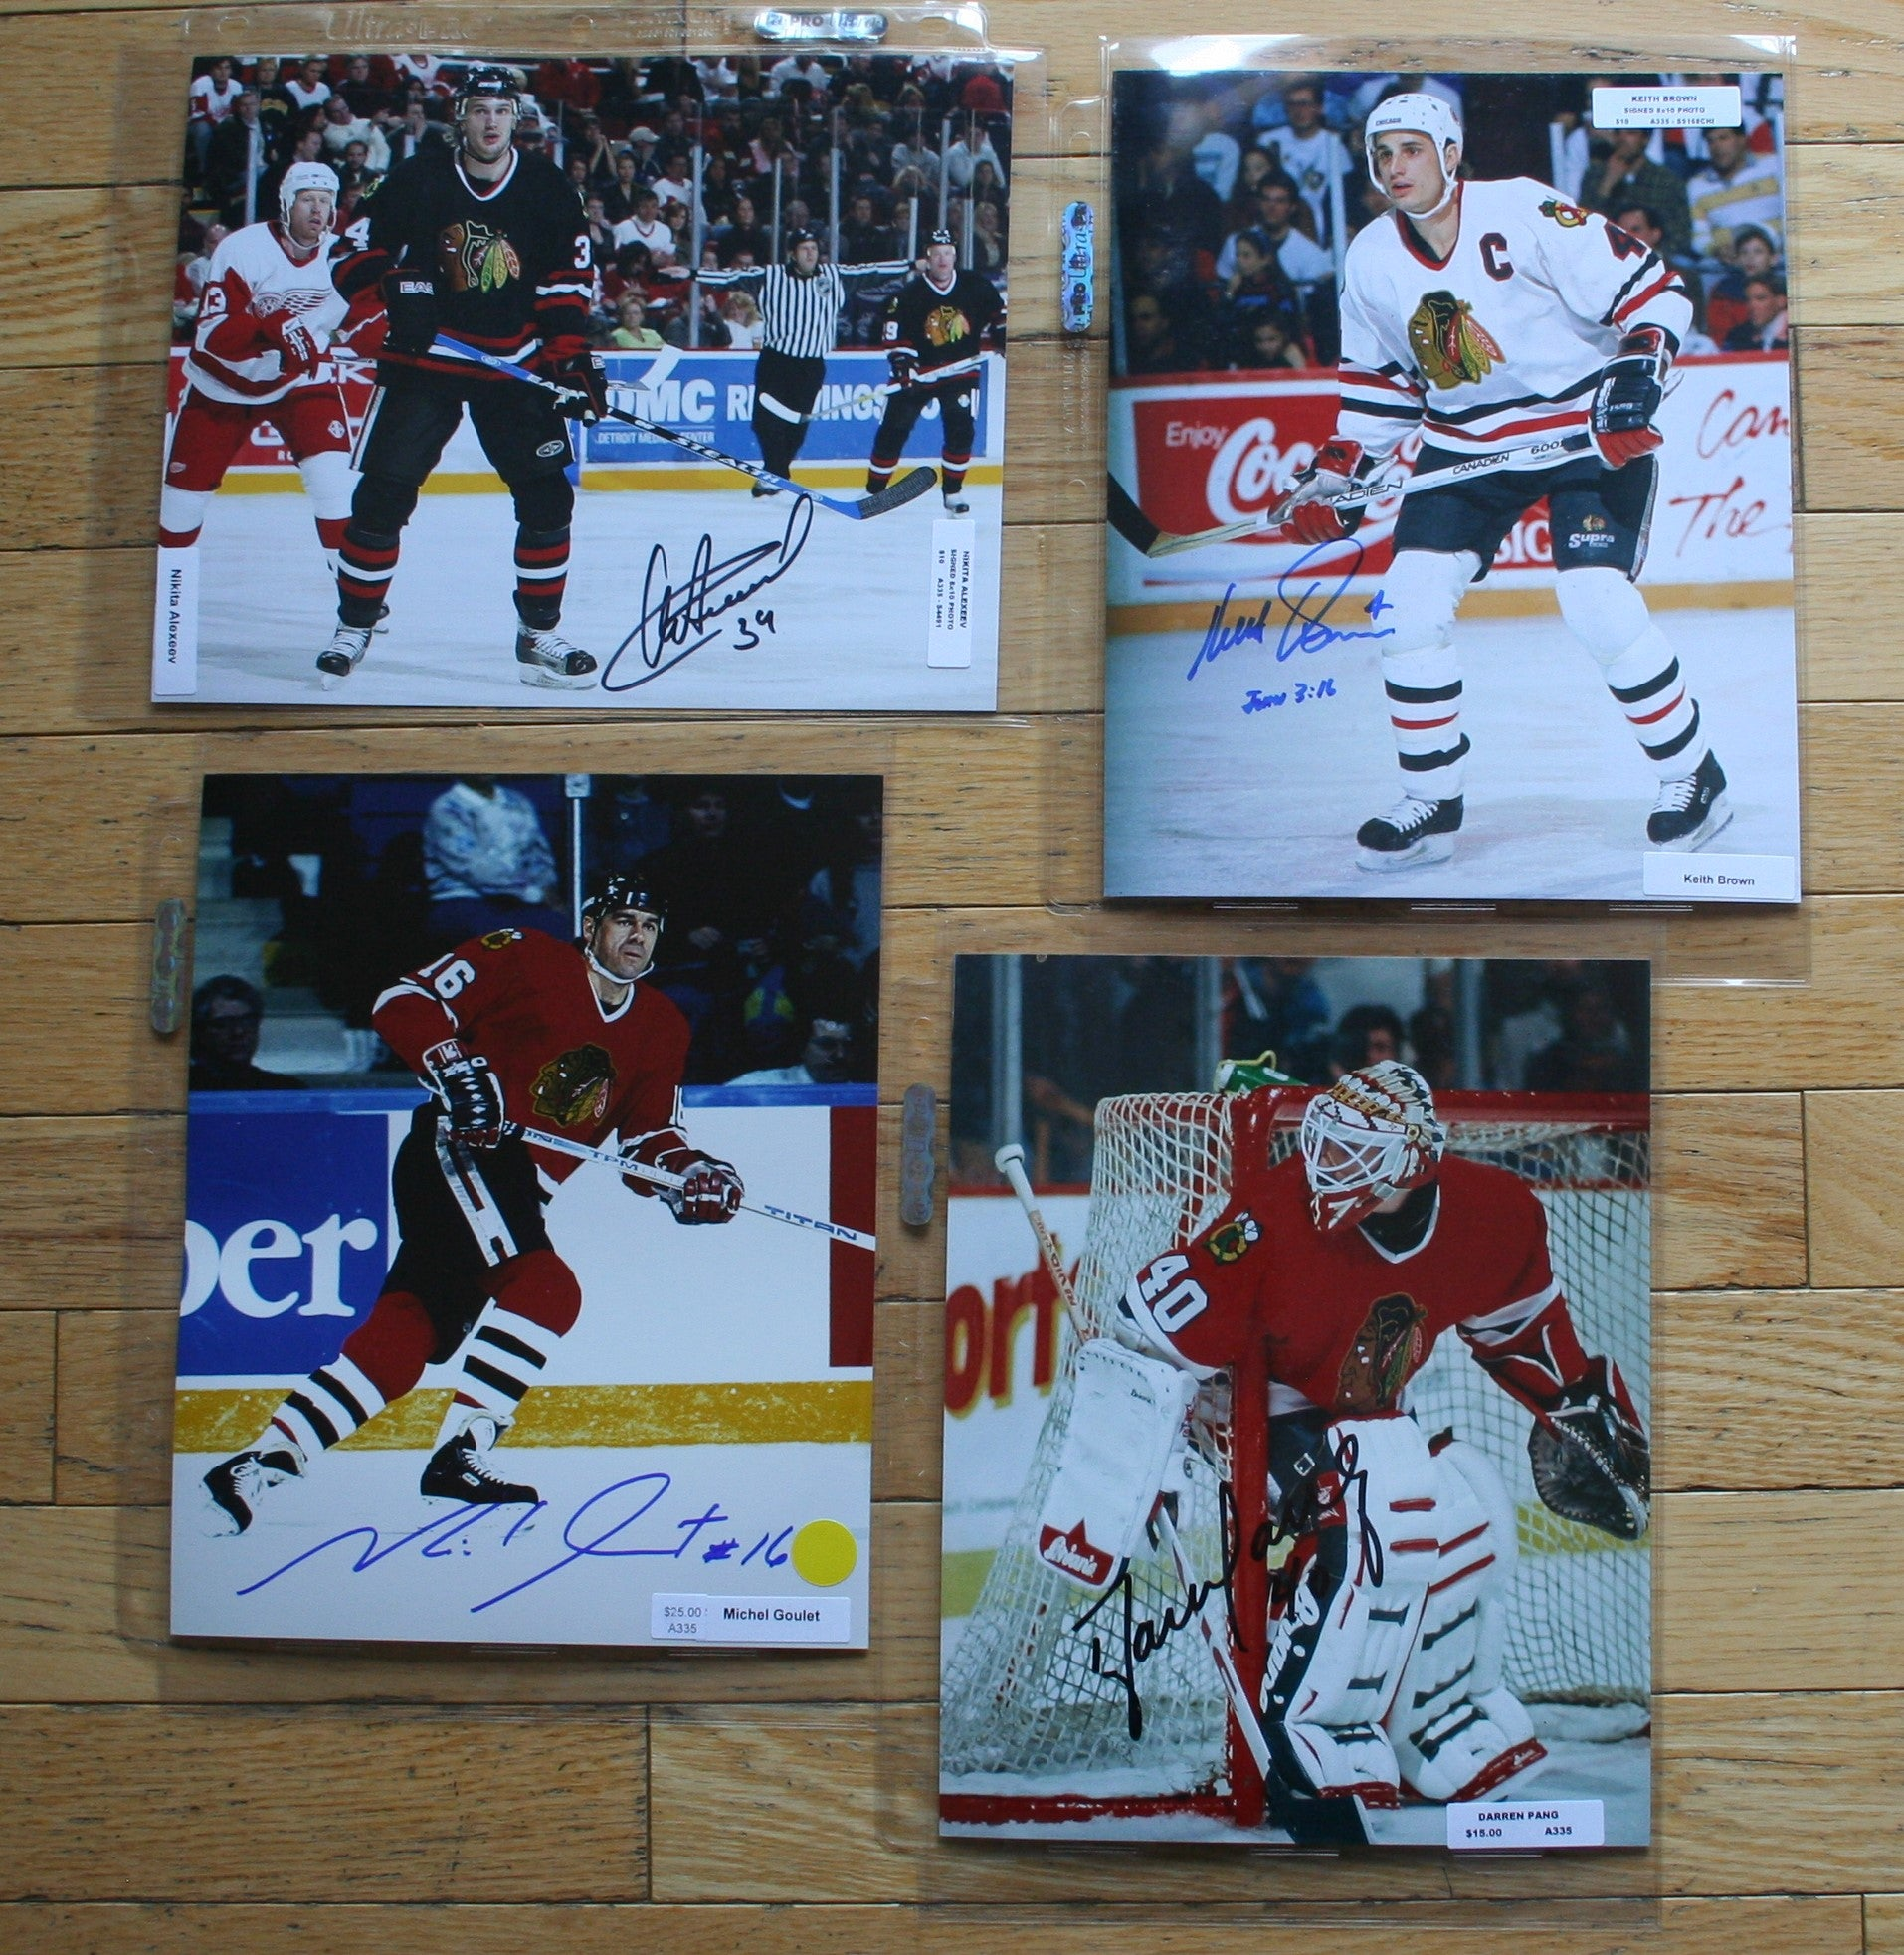 4 Autographed Chicago Blackhawks 8x10 Photos  c/w COA  FREE SHIPPING  Alexeev, Brow, Goulet, Pang  NHL Hockey Memorabilia